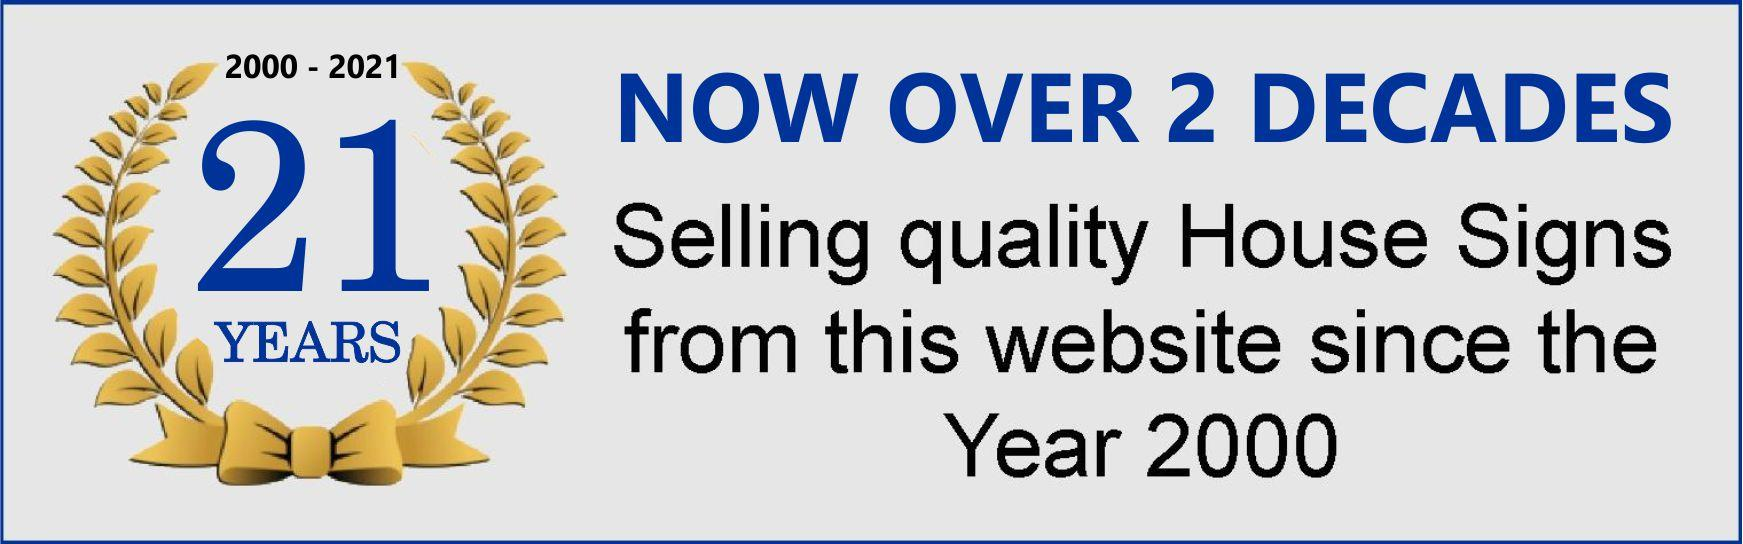 celebrating 20 years selling house signs from this website | Yoursigns.com